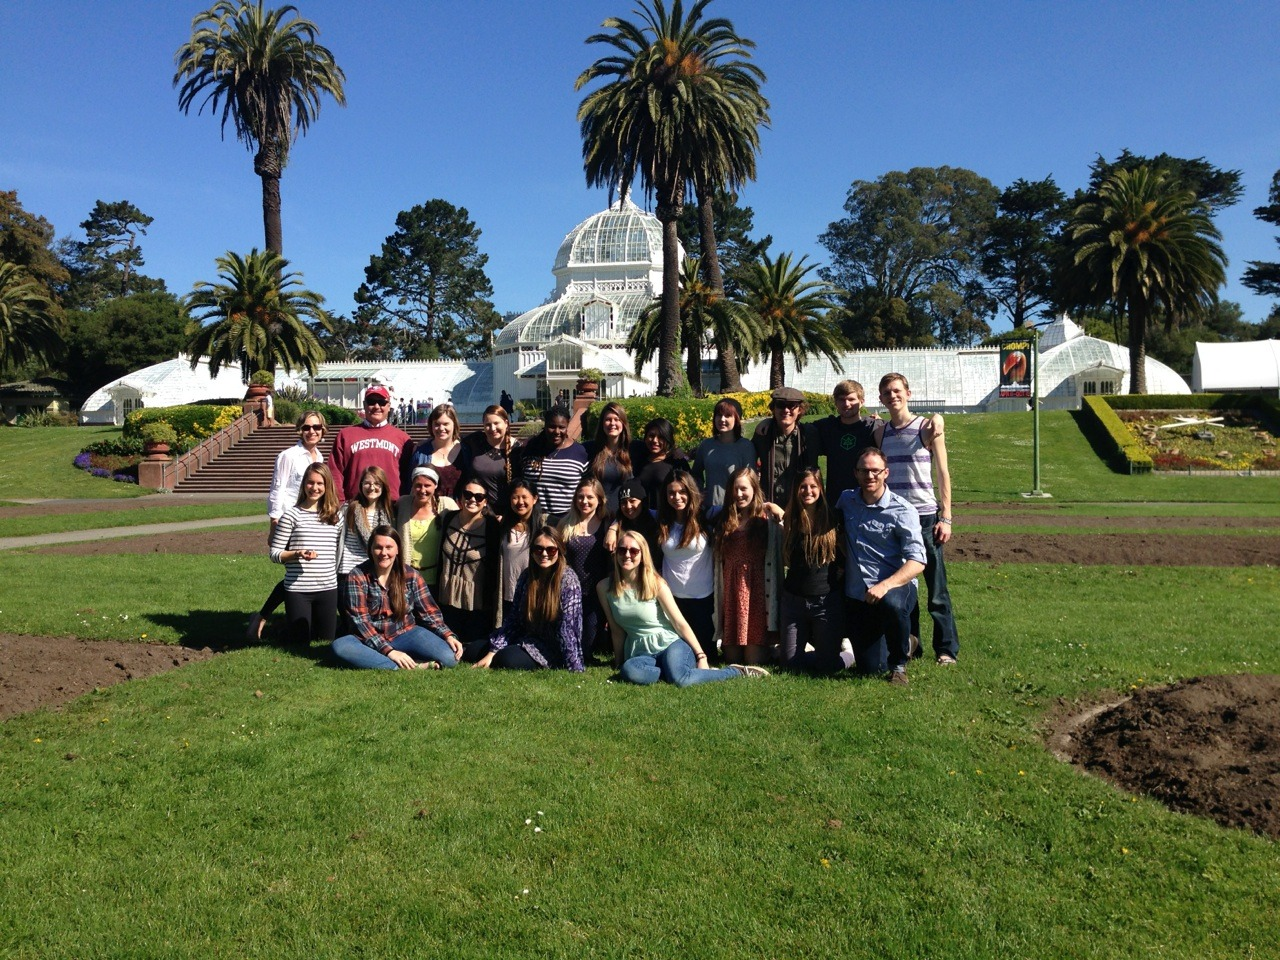 Today the last of us will leave the house to make room for the next group of students. It has been a wonderful semester, full of memories and new experiences, and I have a feeling we will all be back. So, until next time San Francisco!